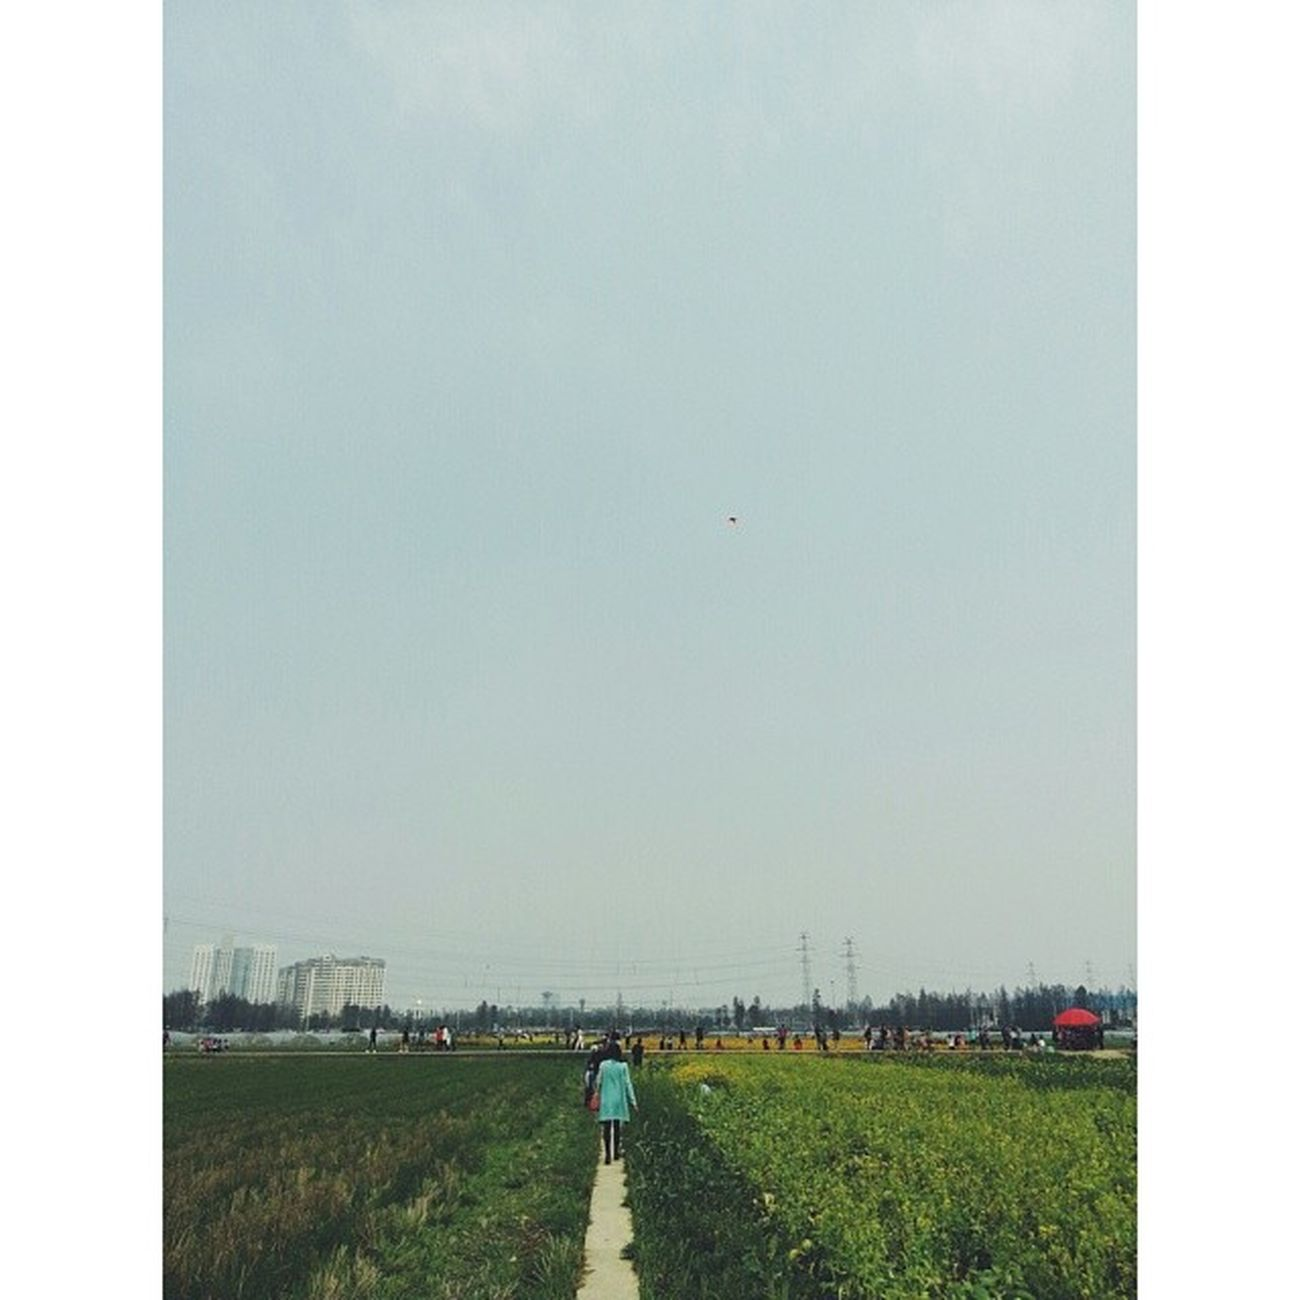 油菜花 湖南农业大学 长沙 Hunan vscocam changsha vsco sky china